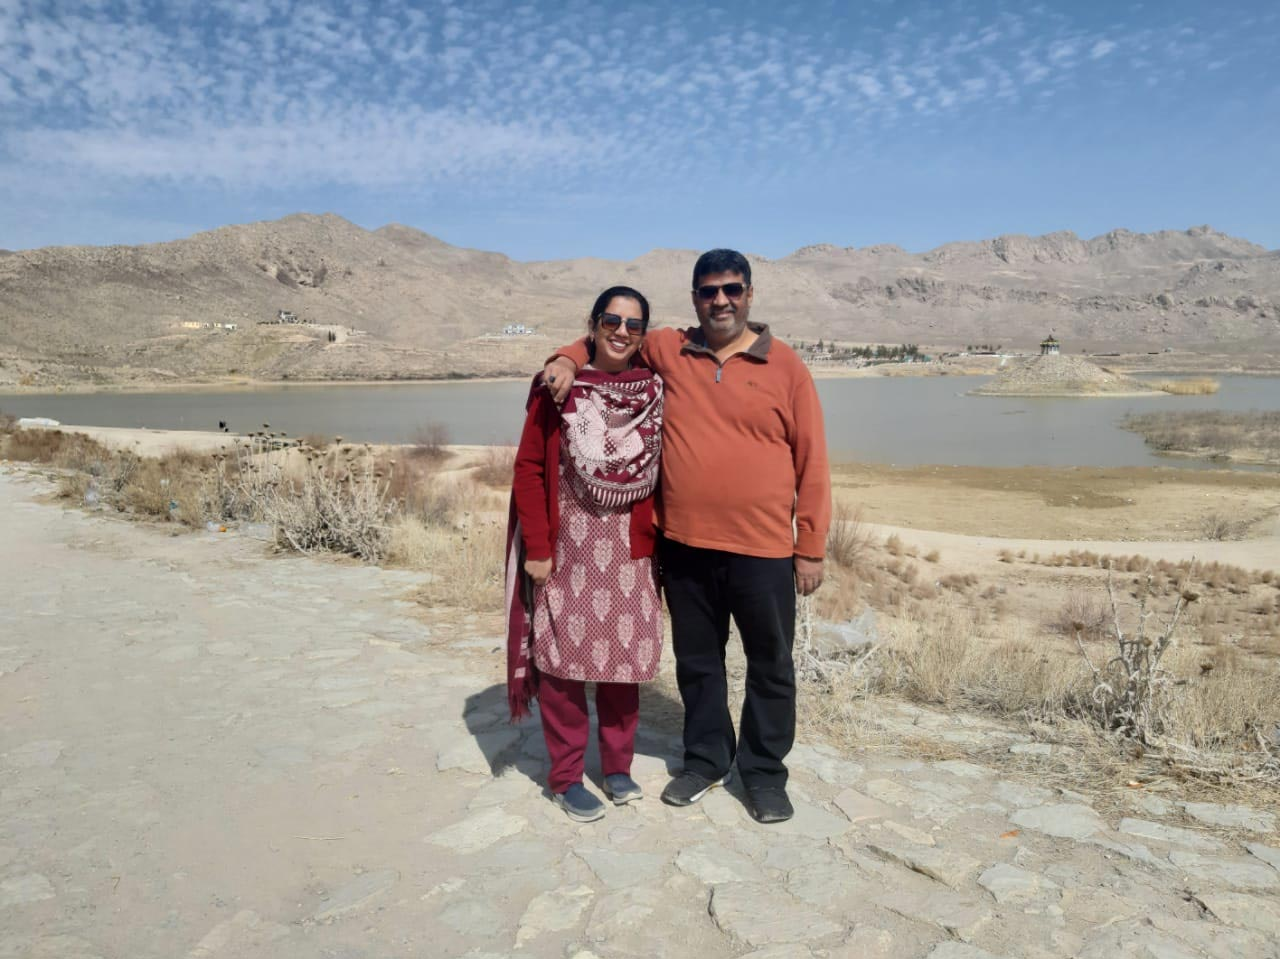 Imran and Erum chilling in front of the lake.